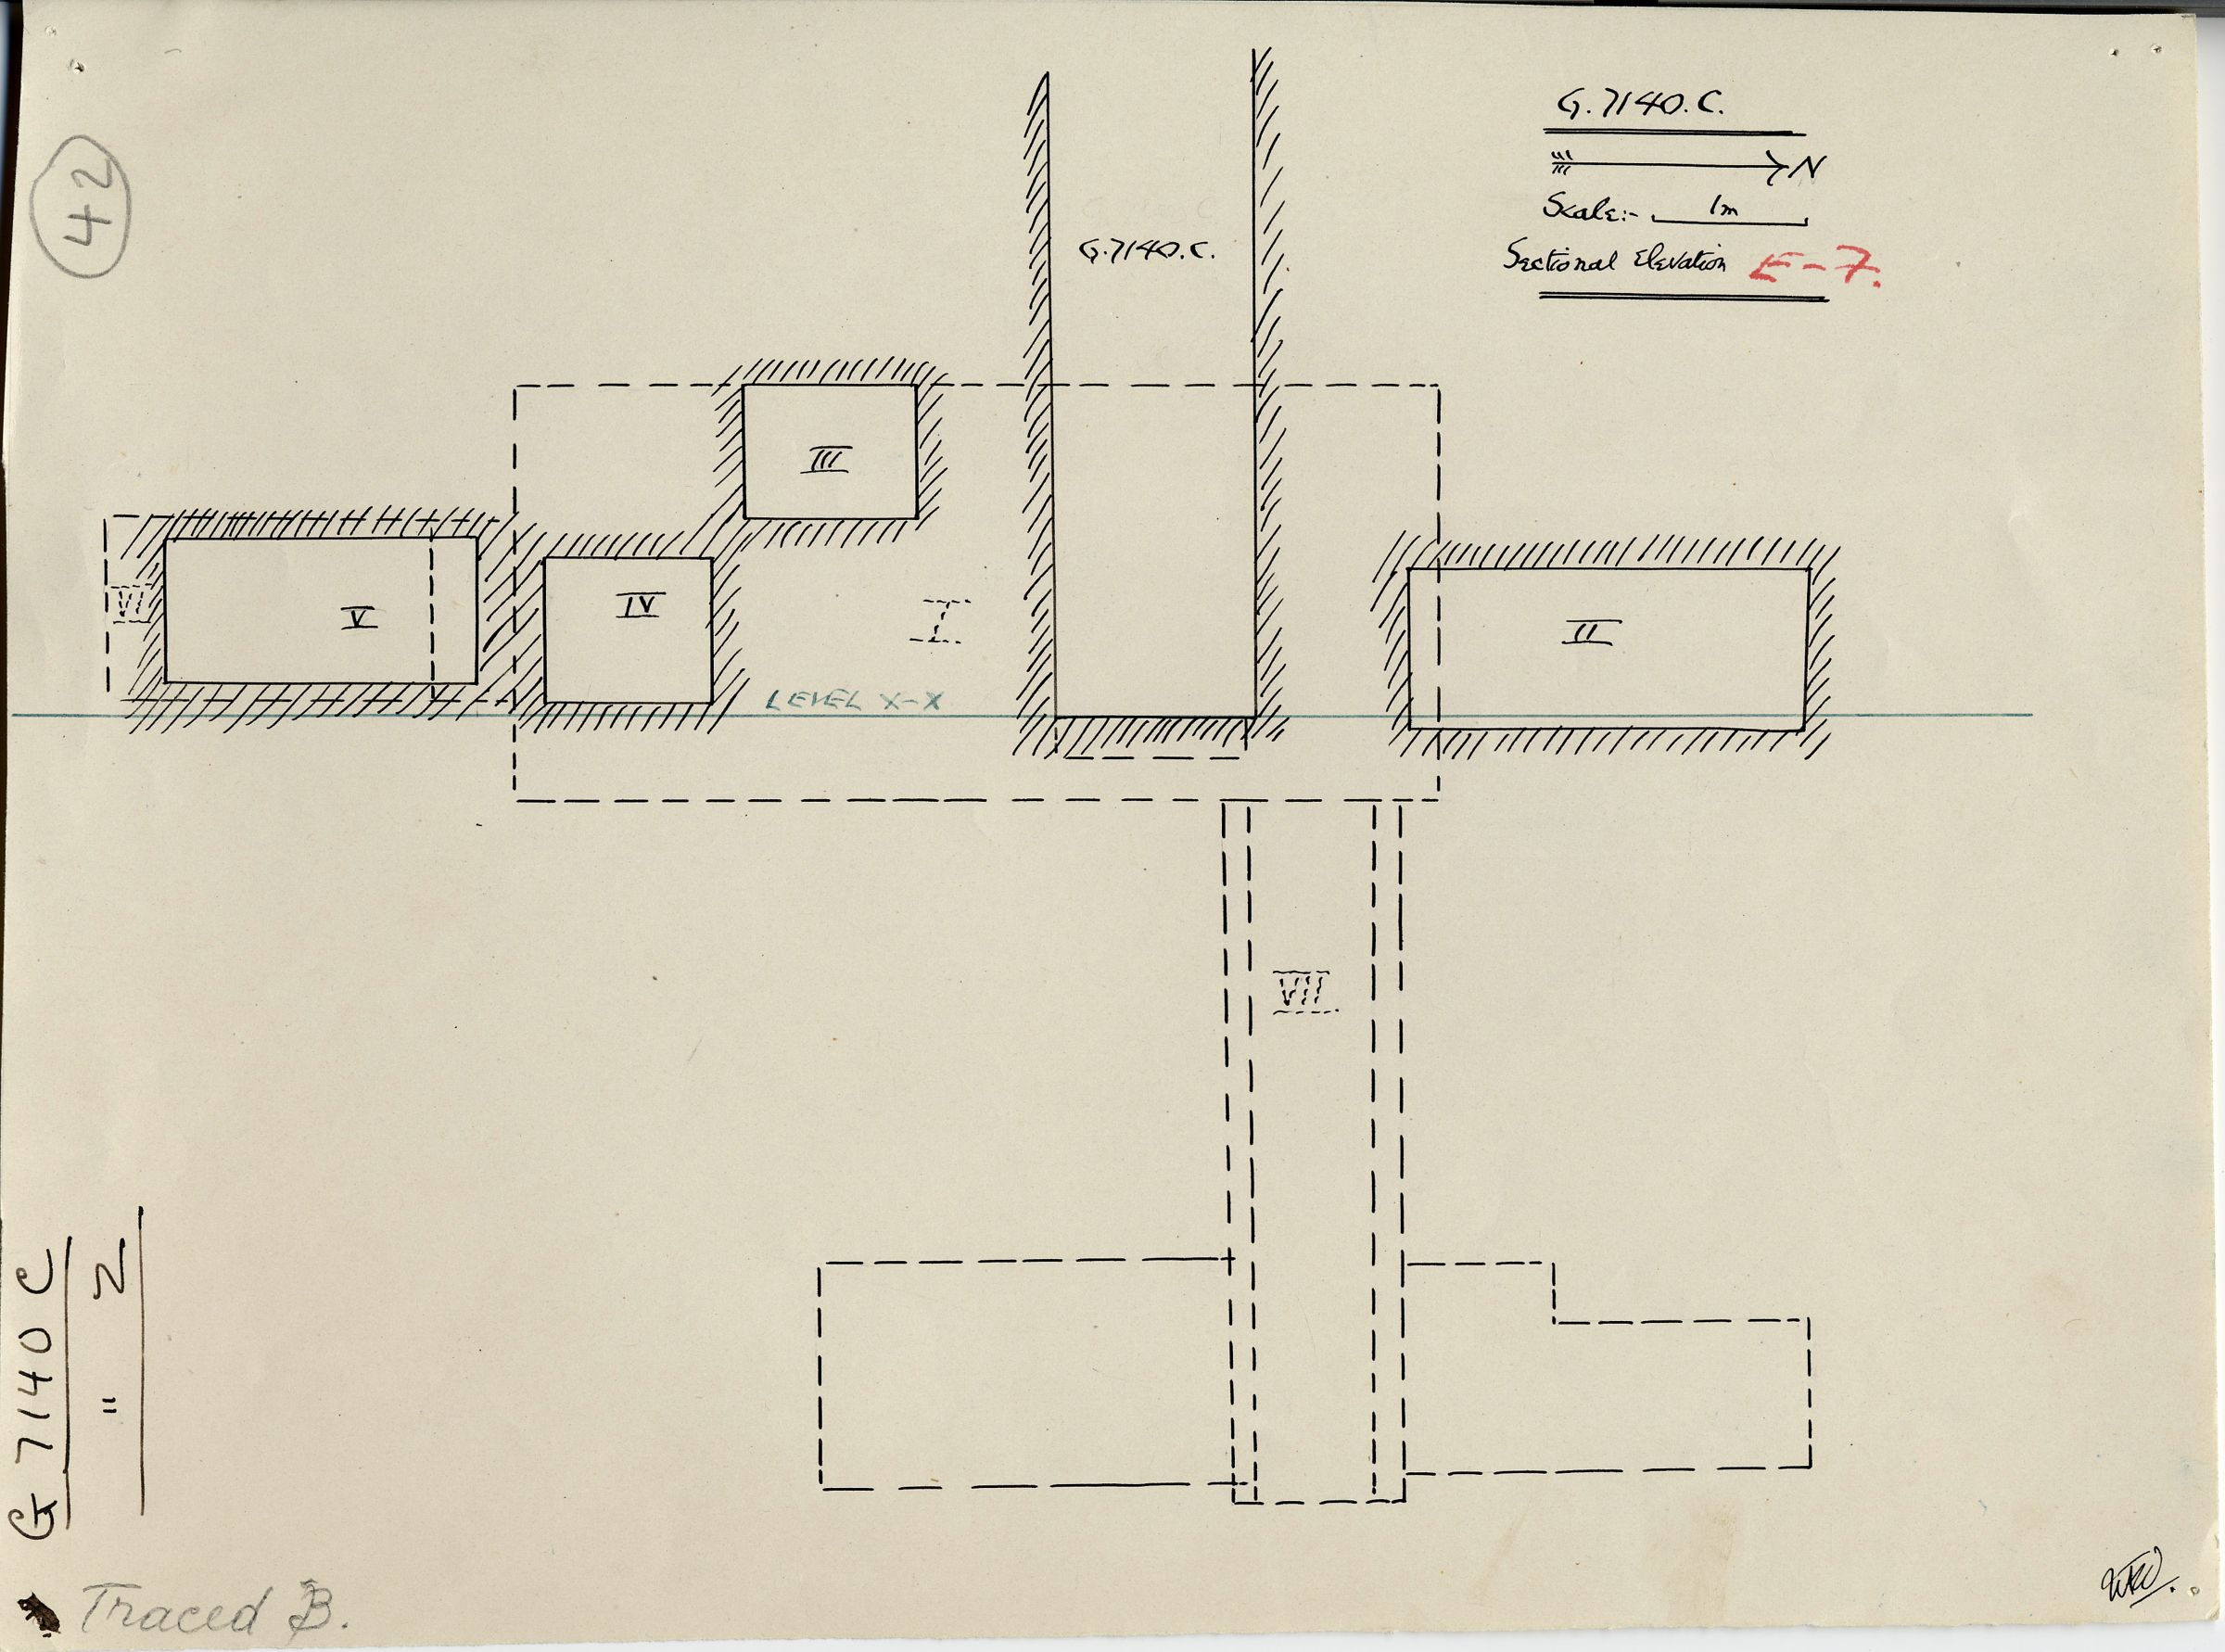 Maps and plans: G 7130-7140: G 7140, Shaft C